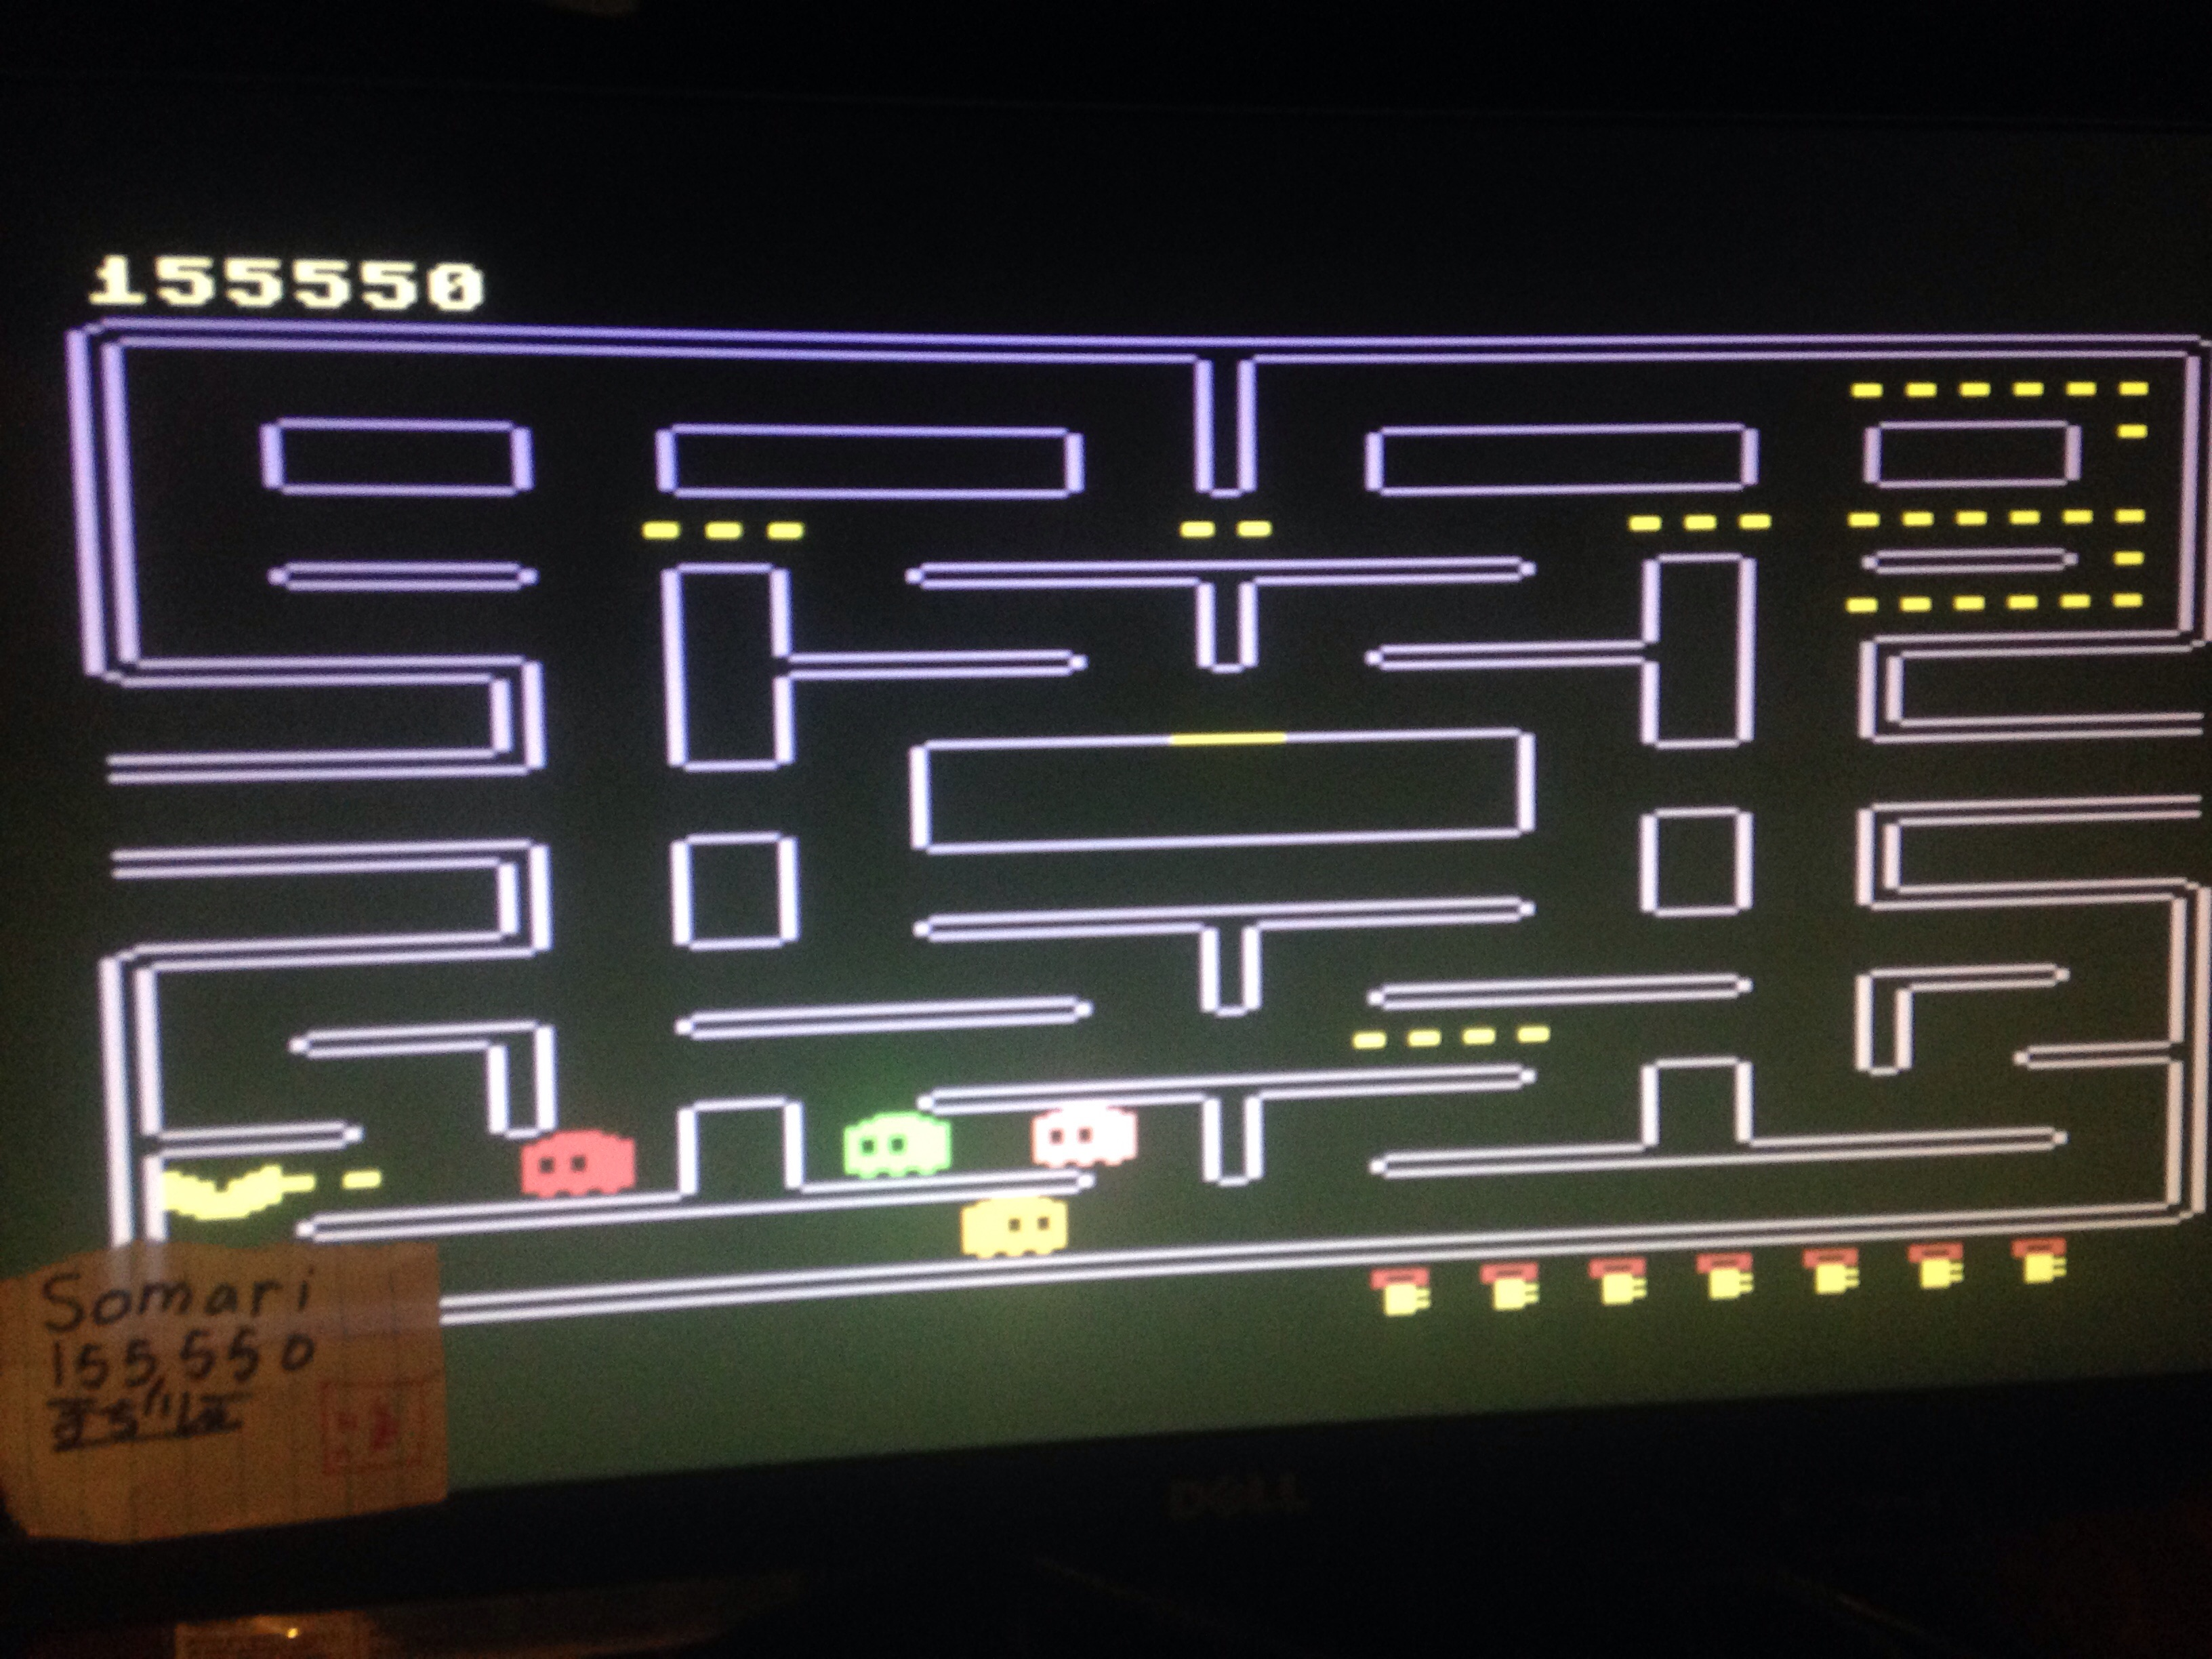 Somari: Pac-Man (Commodore 64 Emulated) 155,550 points on 2015-06-09 17:27:23